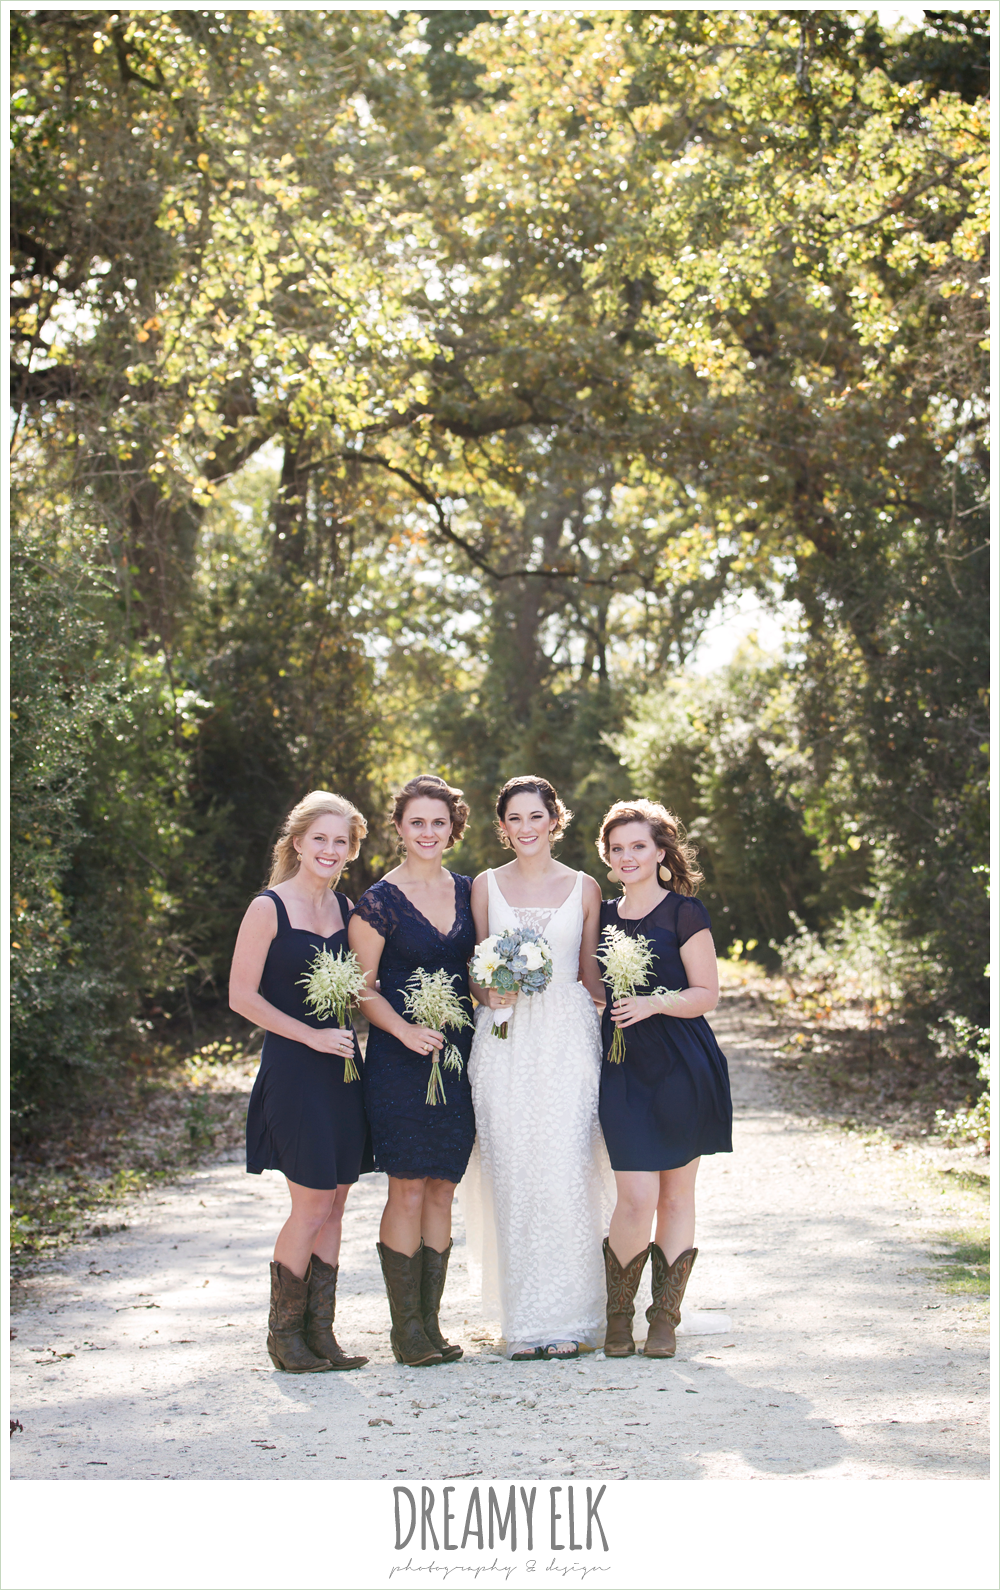 mix matched navy bridesmaids dresses, cowboy boots, rustic chic wedding photo, the amish barn at edge {dreamy elk photography and design}